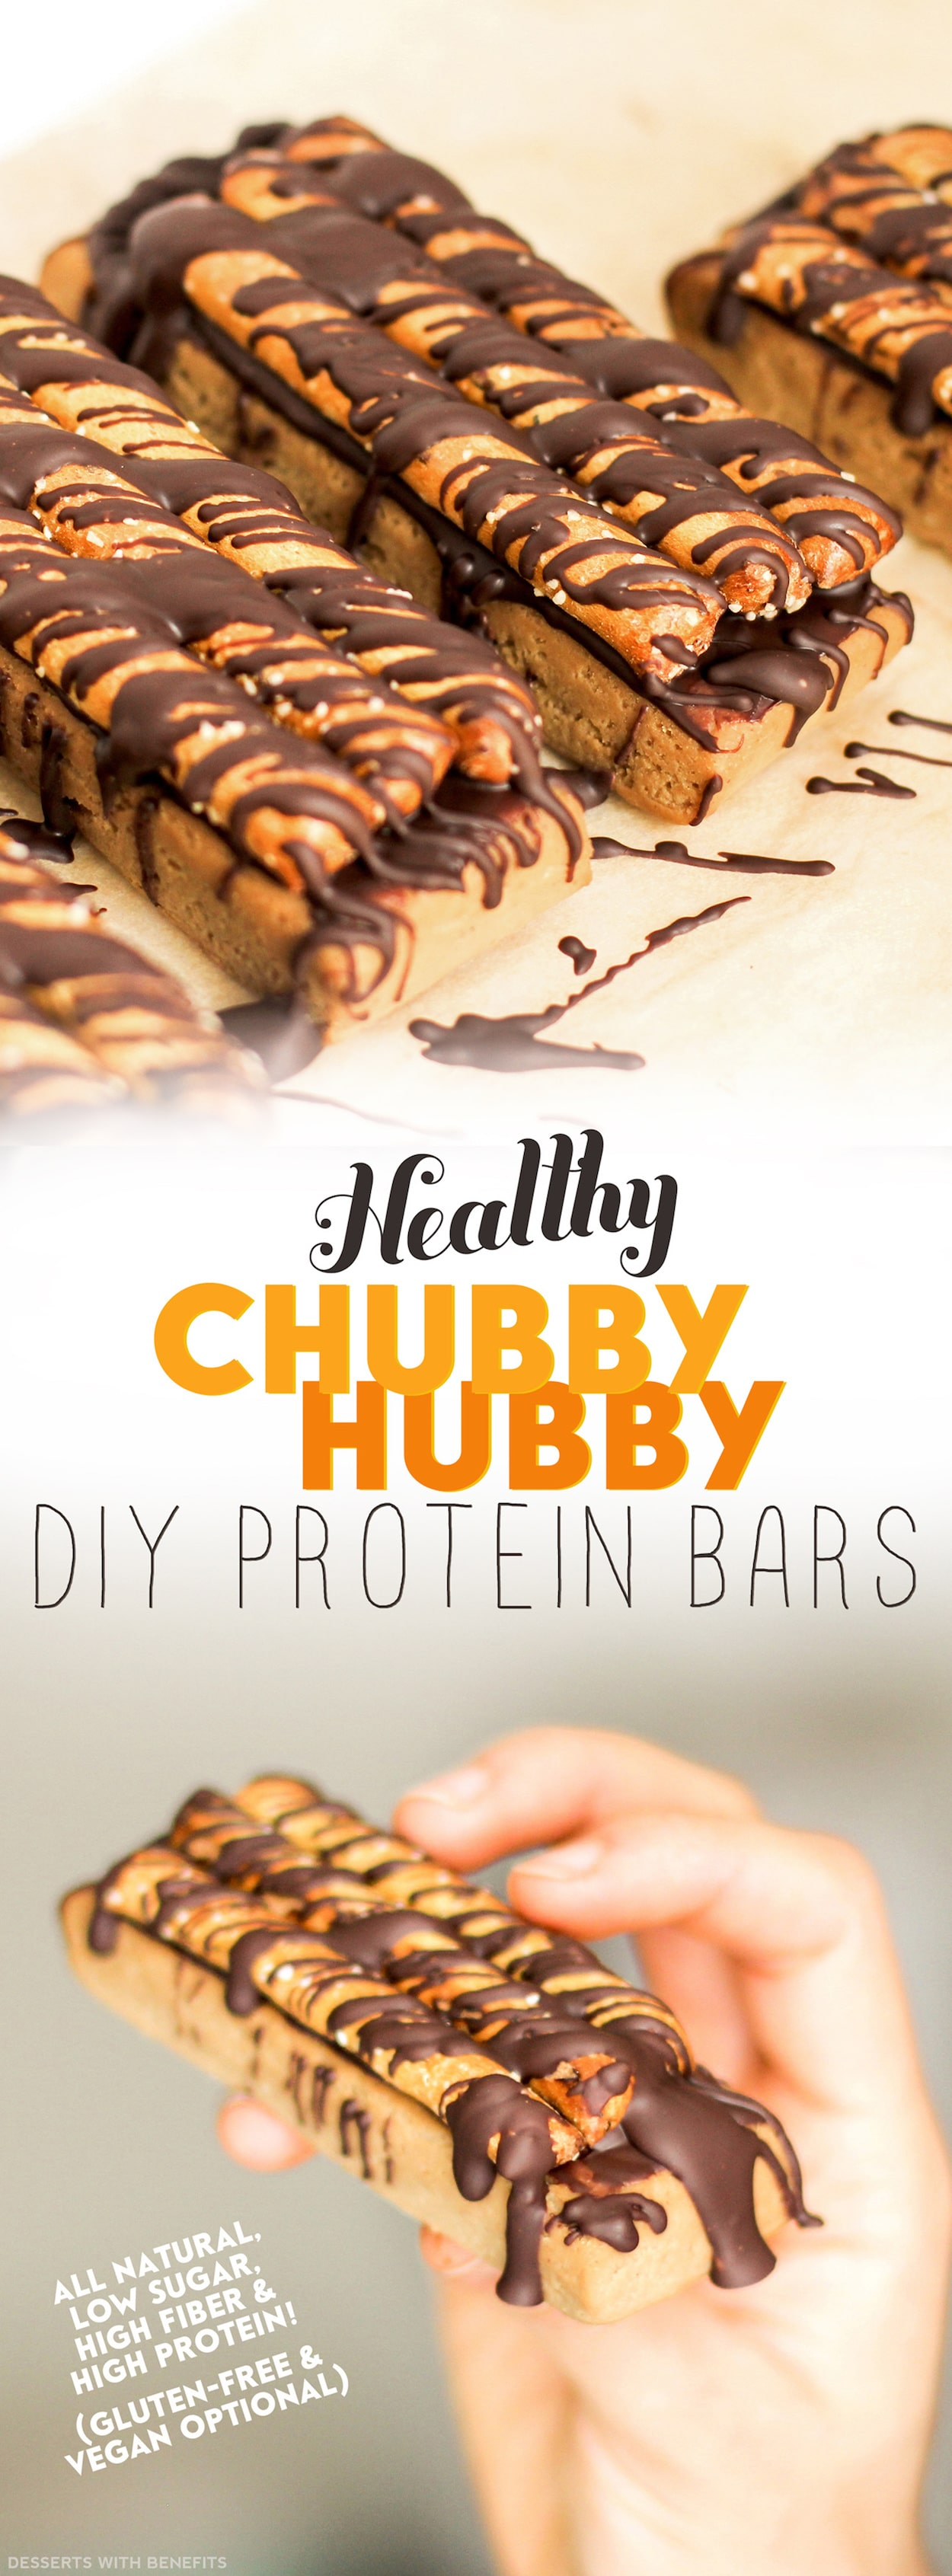 Unlike Ben & Jerry's Chubby Hubby ice cream, these Healthy Chubby Hubby DIY Protein Bars are low in sugar, high in protein and high in fiber! They're easy to make, totally craving-worthy, and 100% healthy. Indulge in this peanut butter-chocolate-pretzel combo, guilt-free!